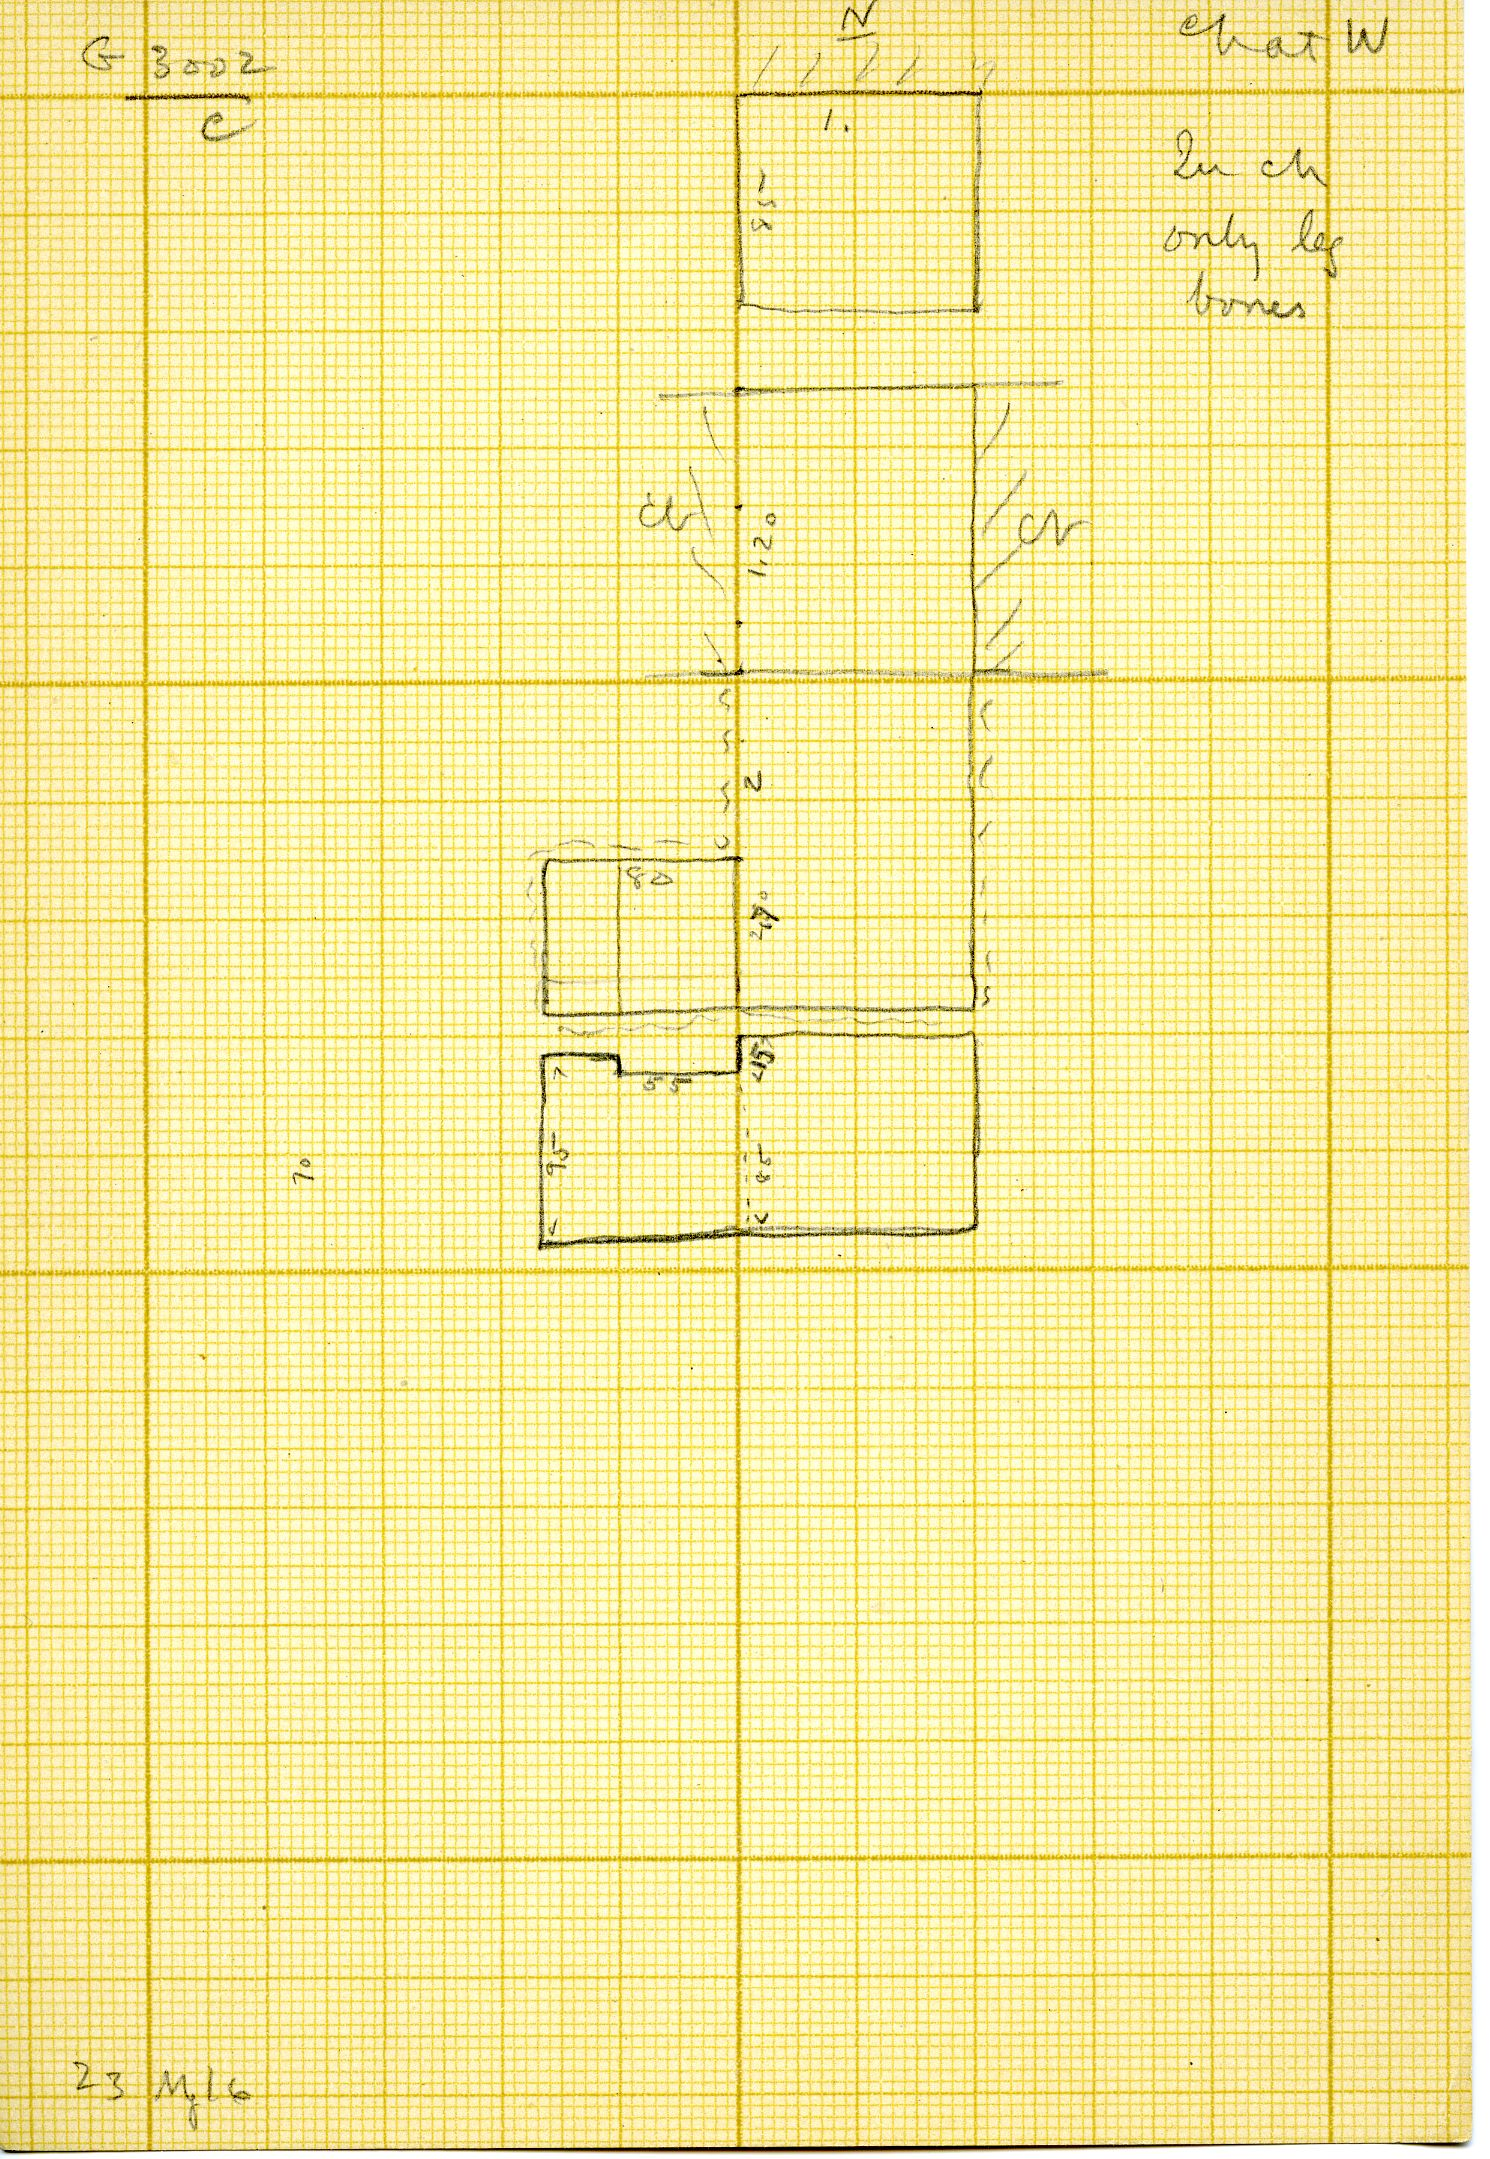 Maps and plans: G 3002, Shaft C